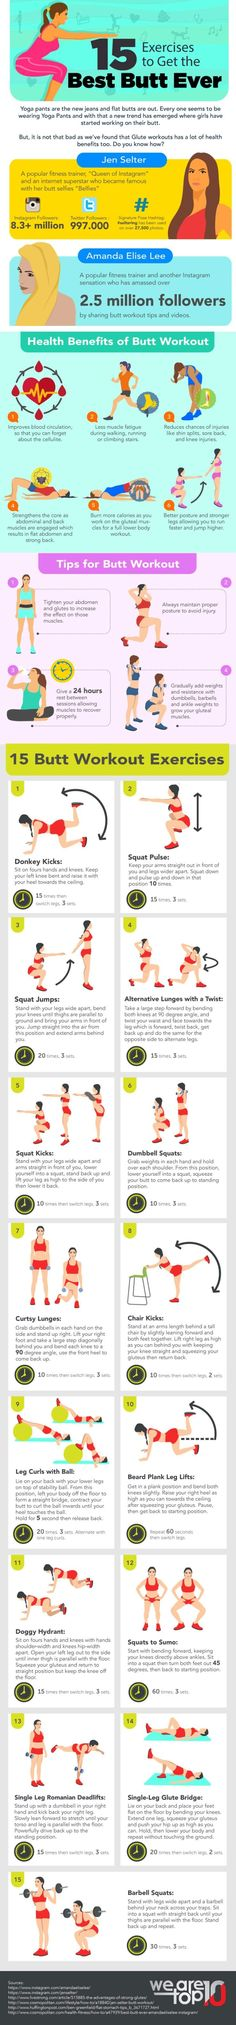 15-Exercises-to-get-Best-Butt-Ever1